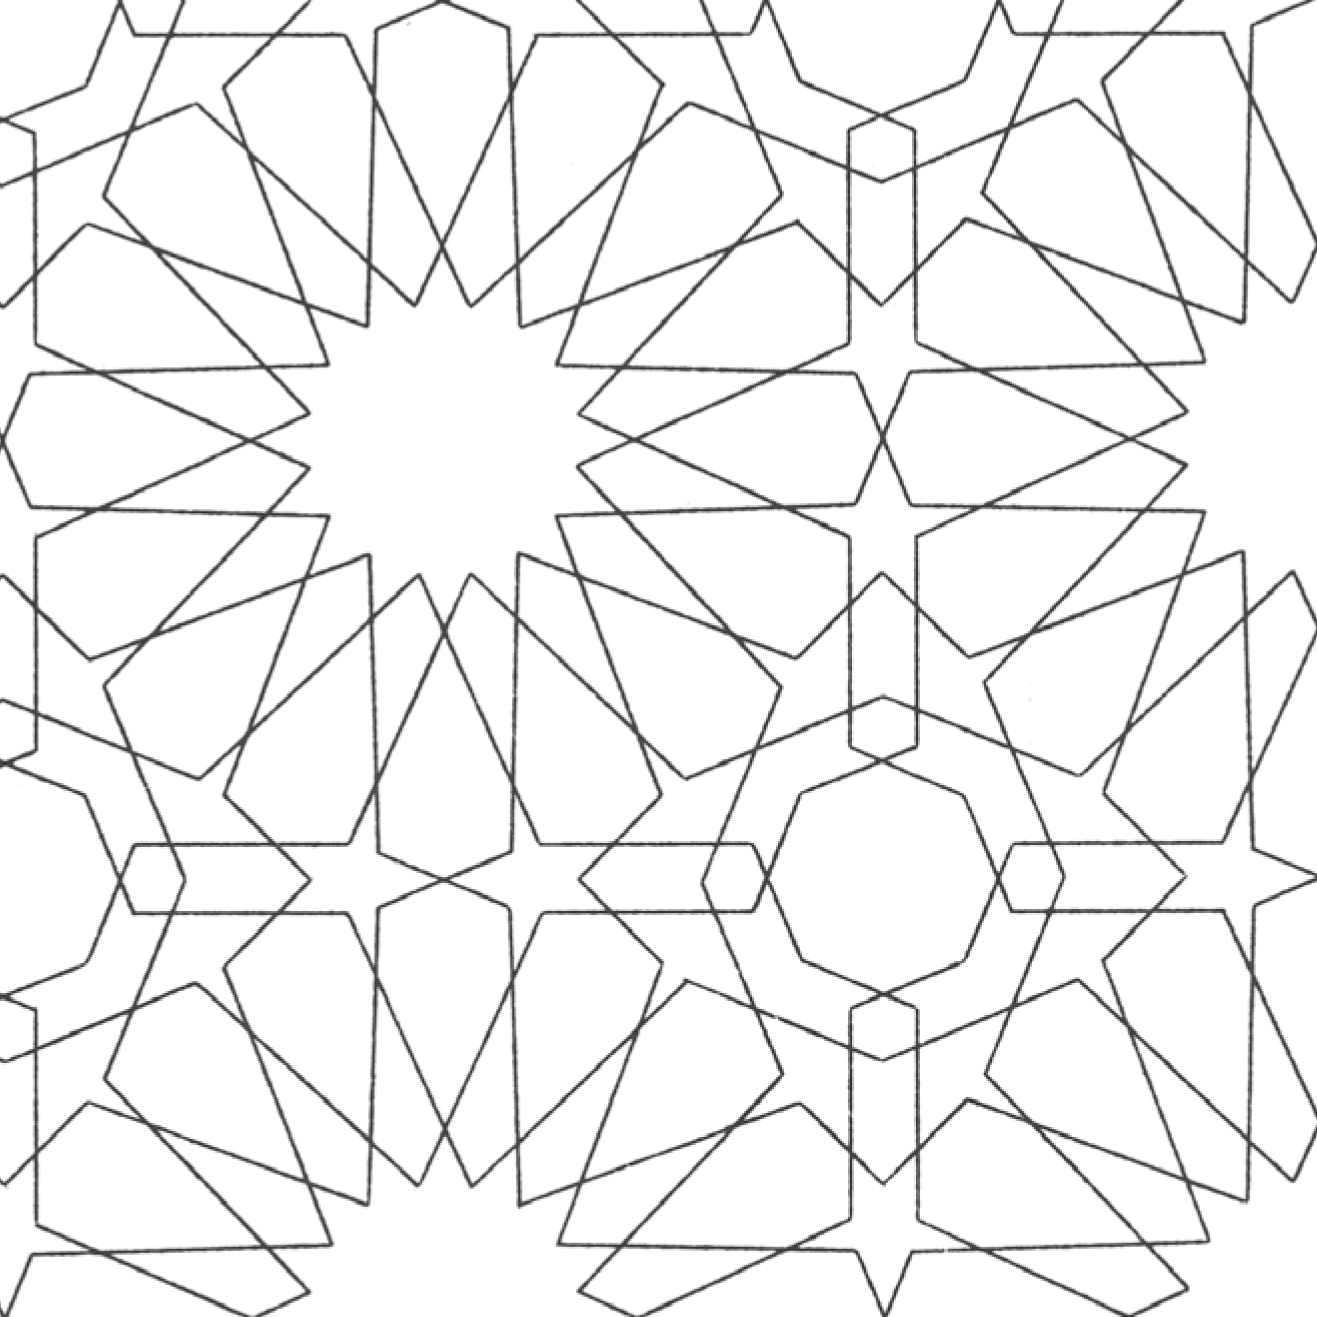 islamic art patterns to colour islamic geometric patterns coloring pages at getcolorings colour art to patterns islamic